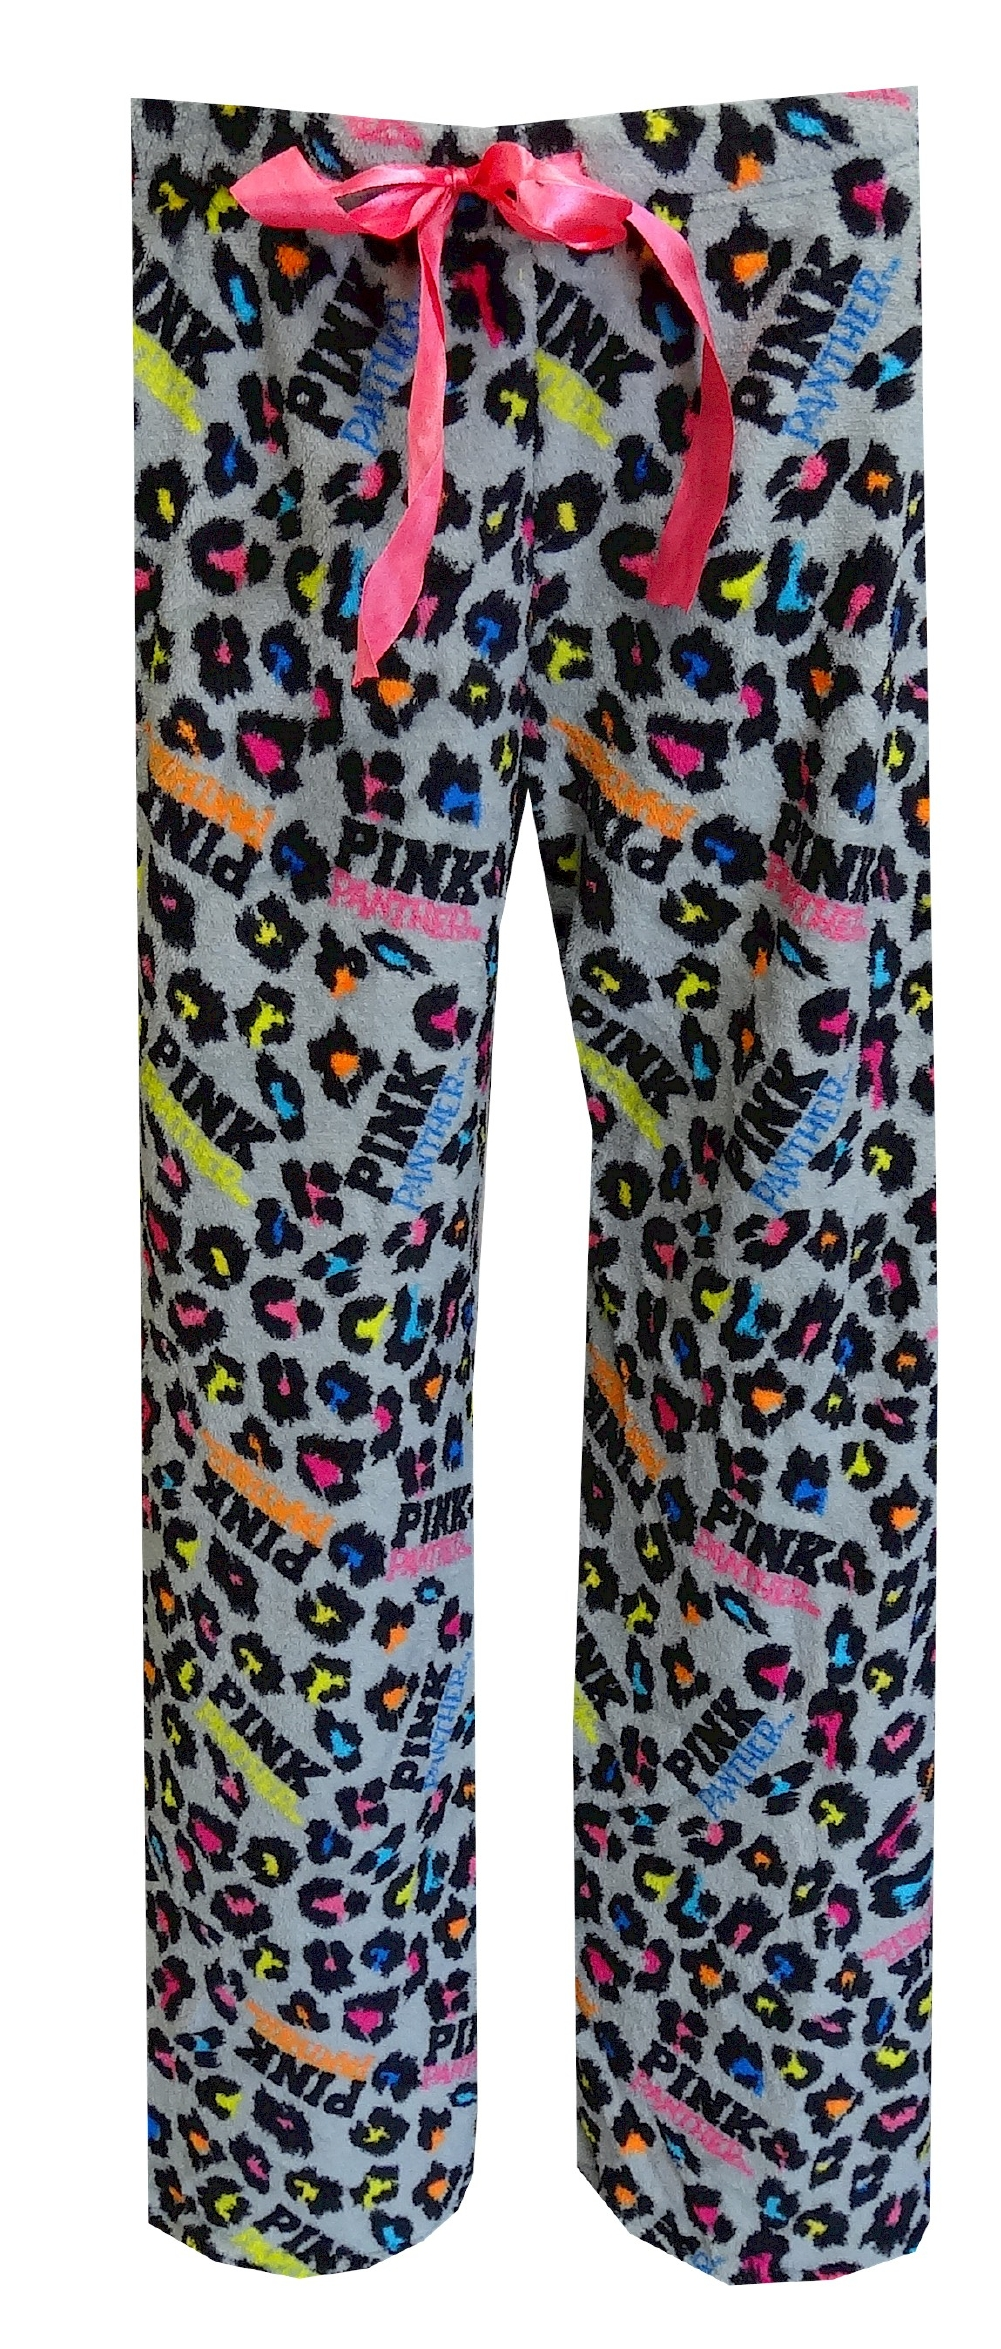 PINK Panther Neon Leopard Gray Plush Lounge Pant for women